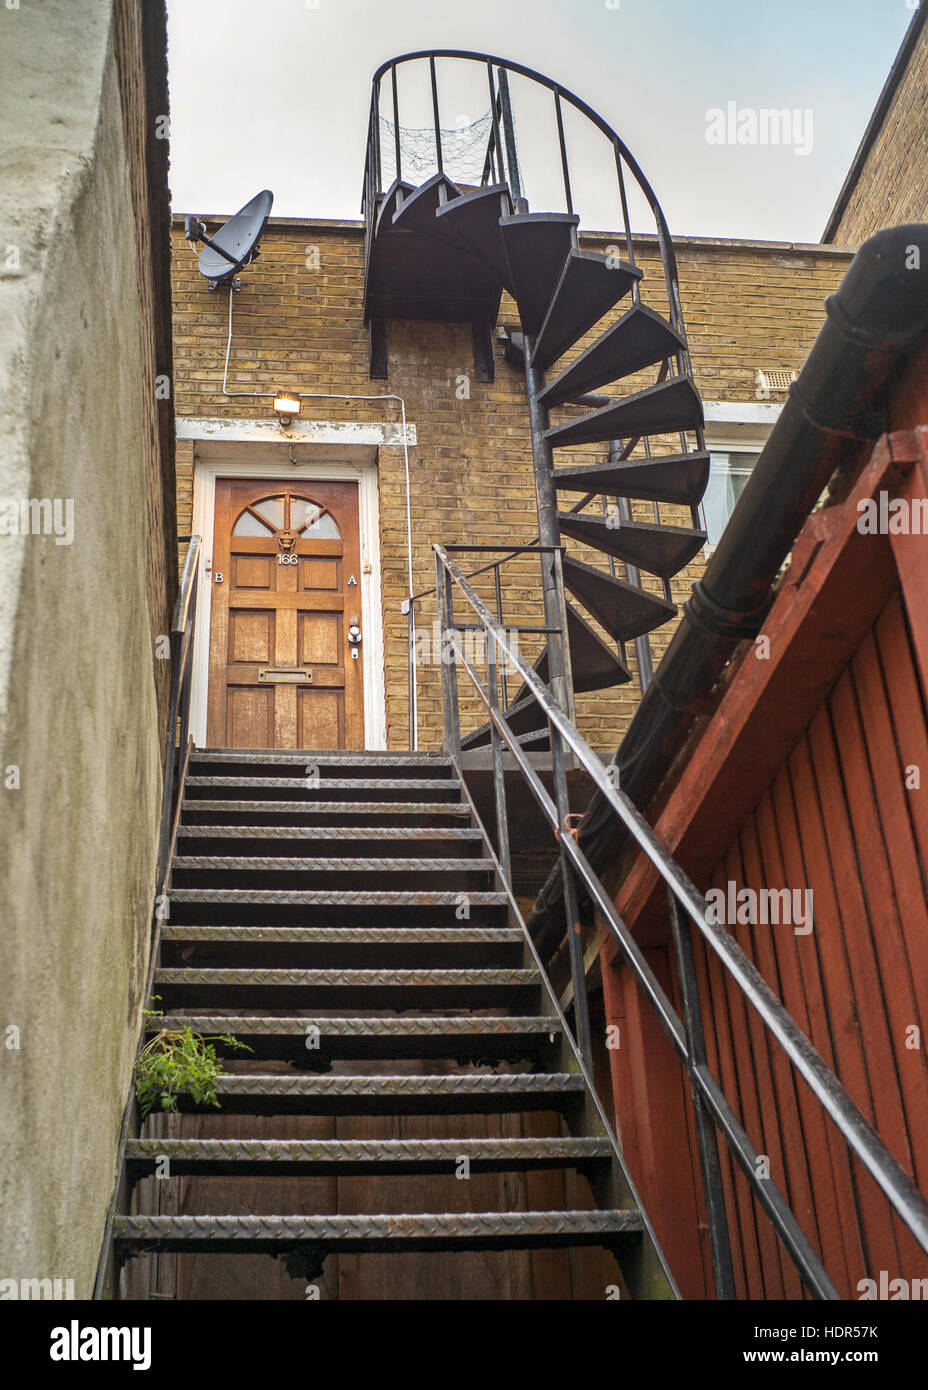 Iron Staircase To Door With Spiral Iron Staircase To Roof   Stock Image